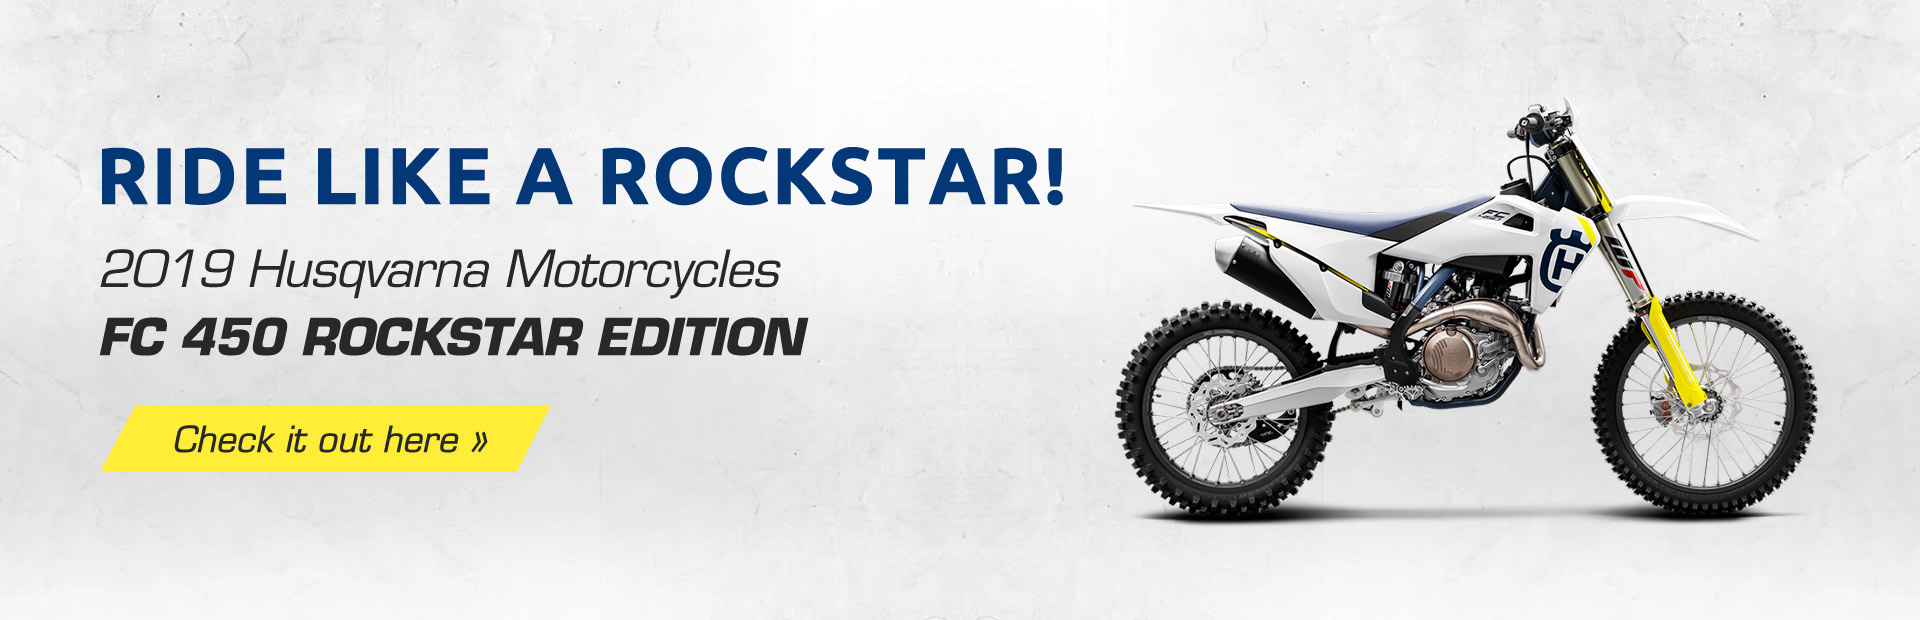 2019 Husqvarna Motorcycles FC 450 ROCKSTAR EDITION: Rock like a rockstar! Click here to view the mod